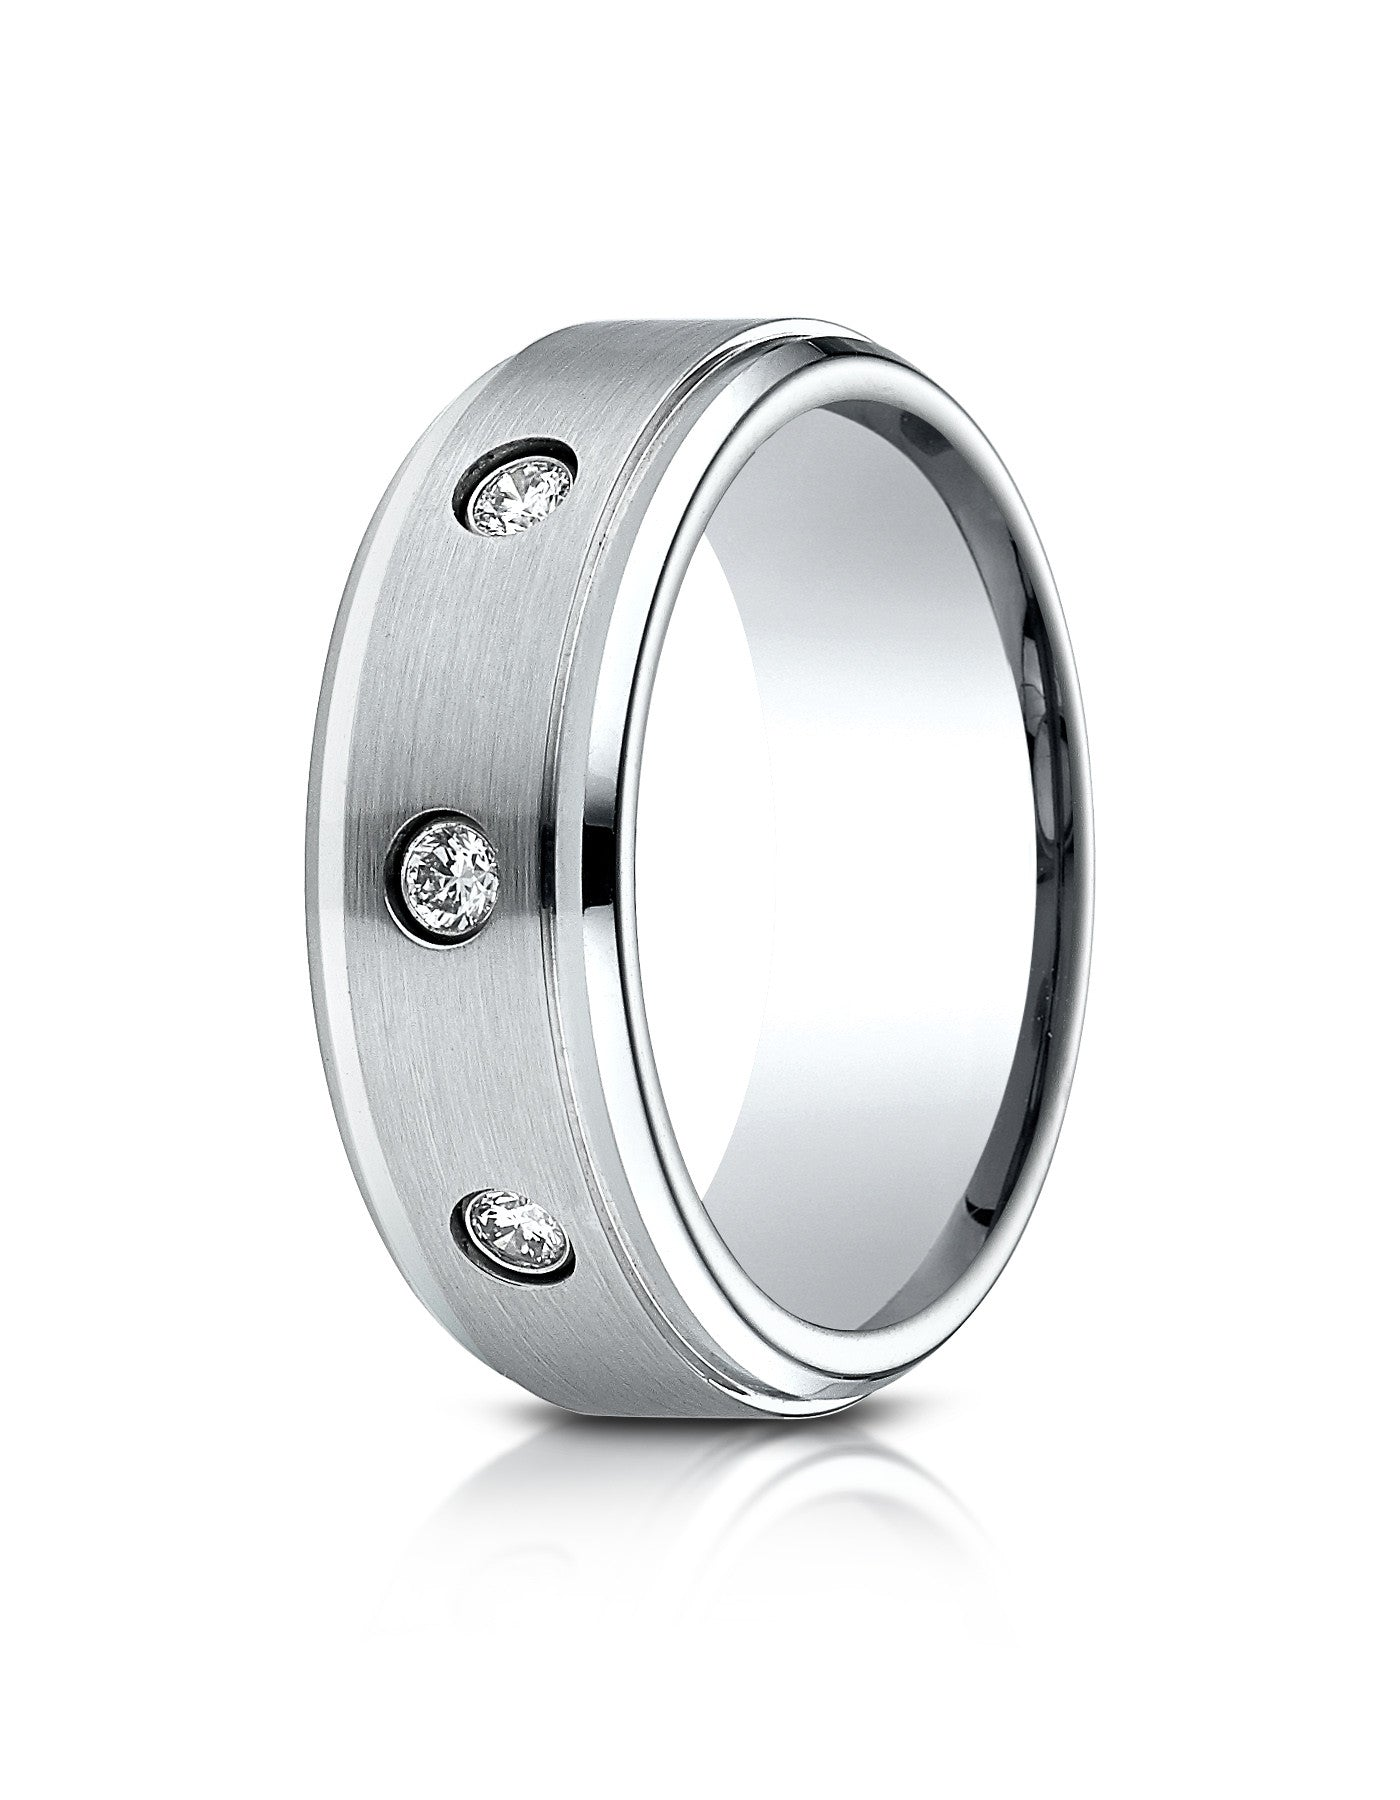 rings chrome benchmark comfort high polished design bands ring fit wedding cobaltchrome cobalt